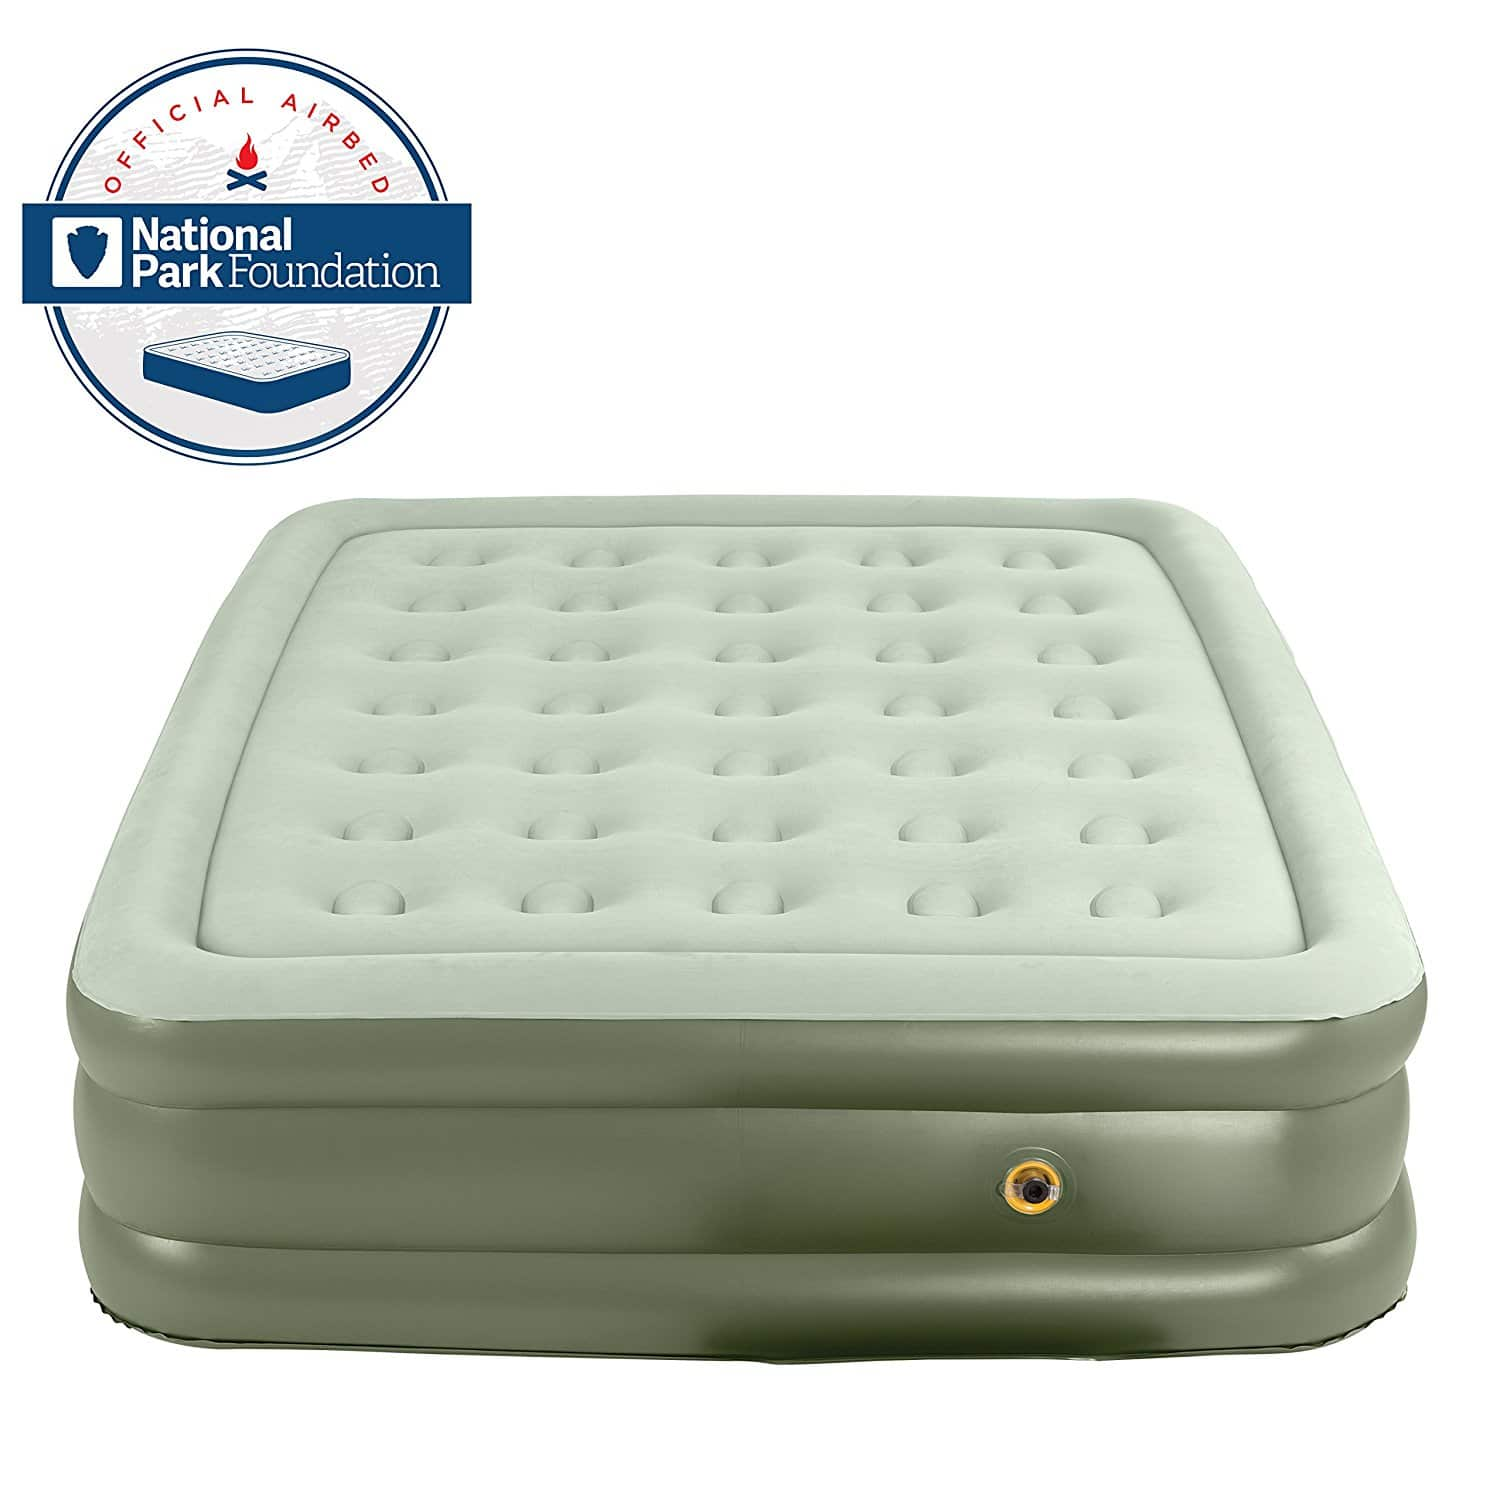 Coleman Durable Supportrest Double High Inflatable Mattress Airbed - Twin $33.43 - Amazon